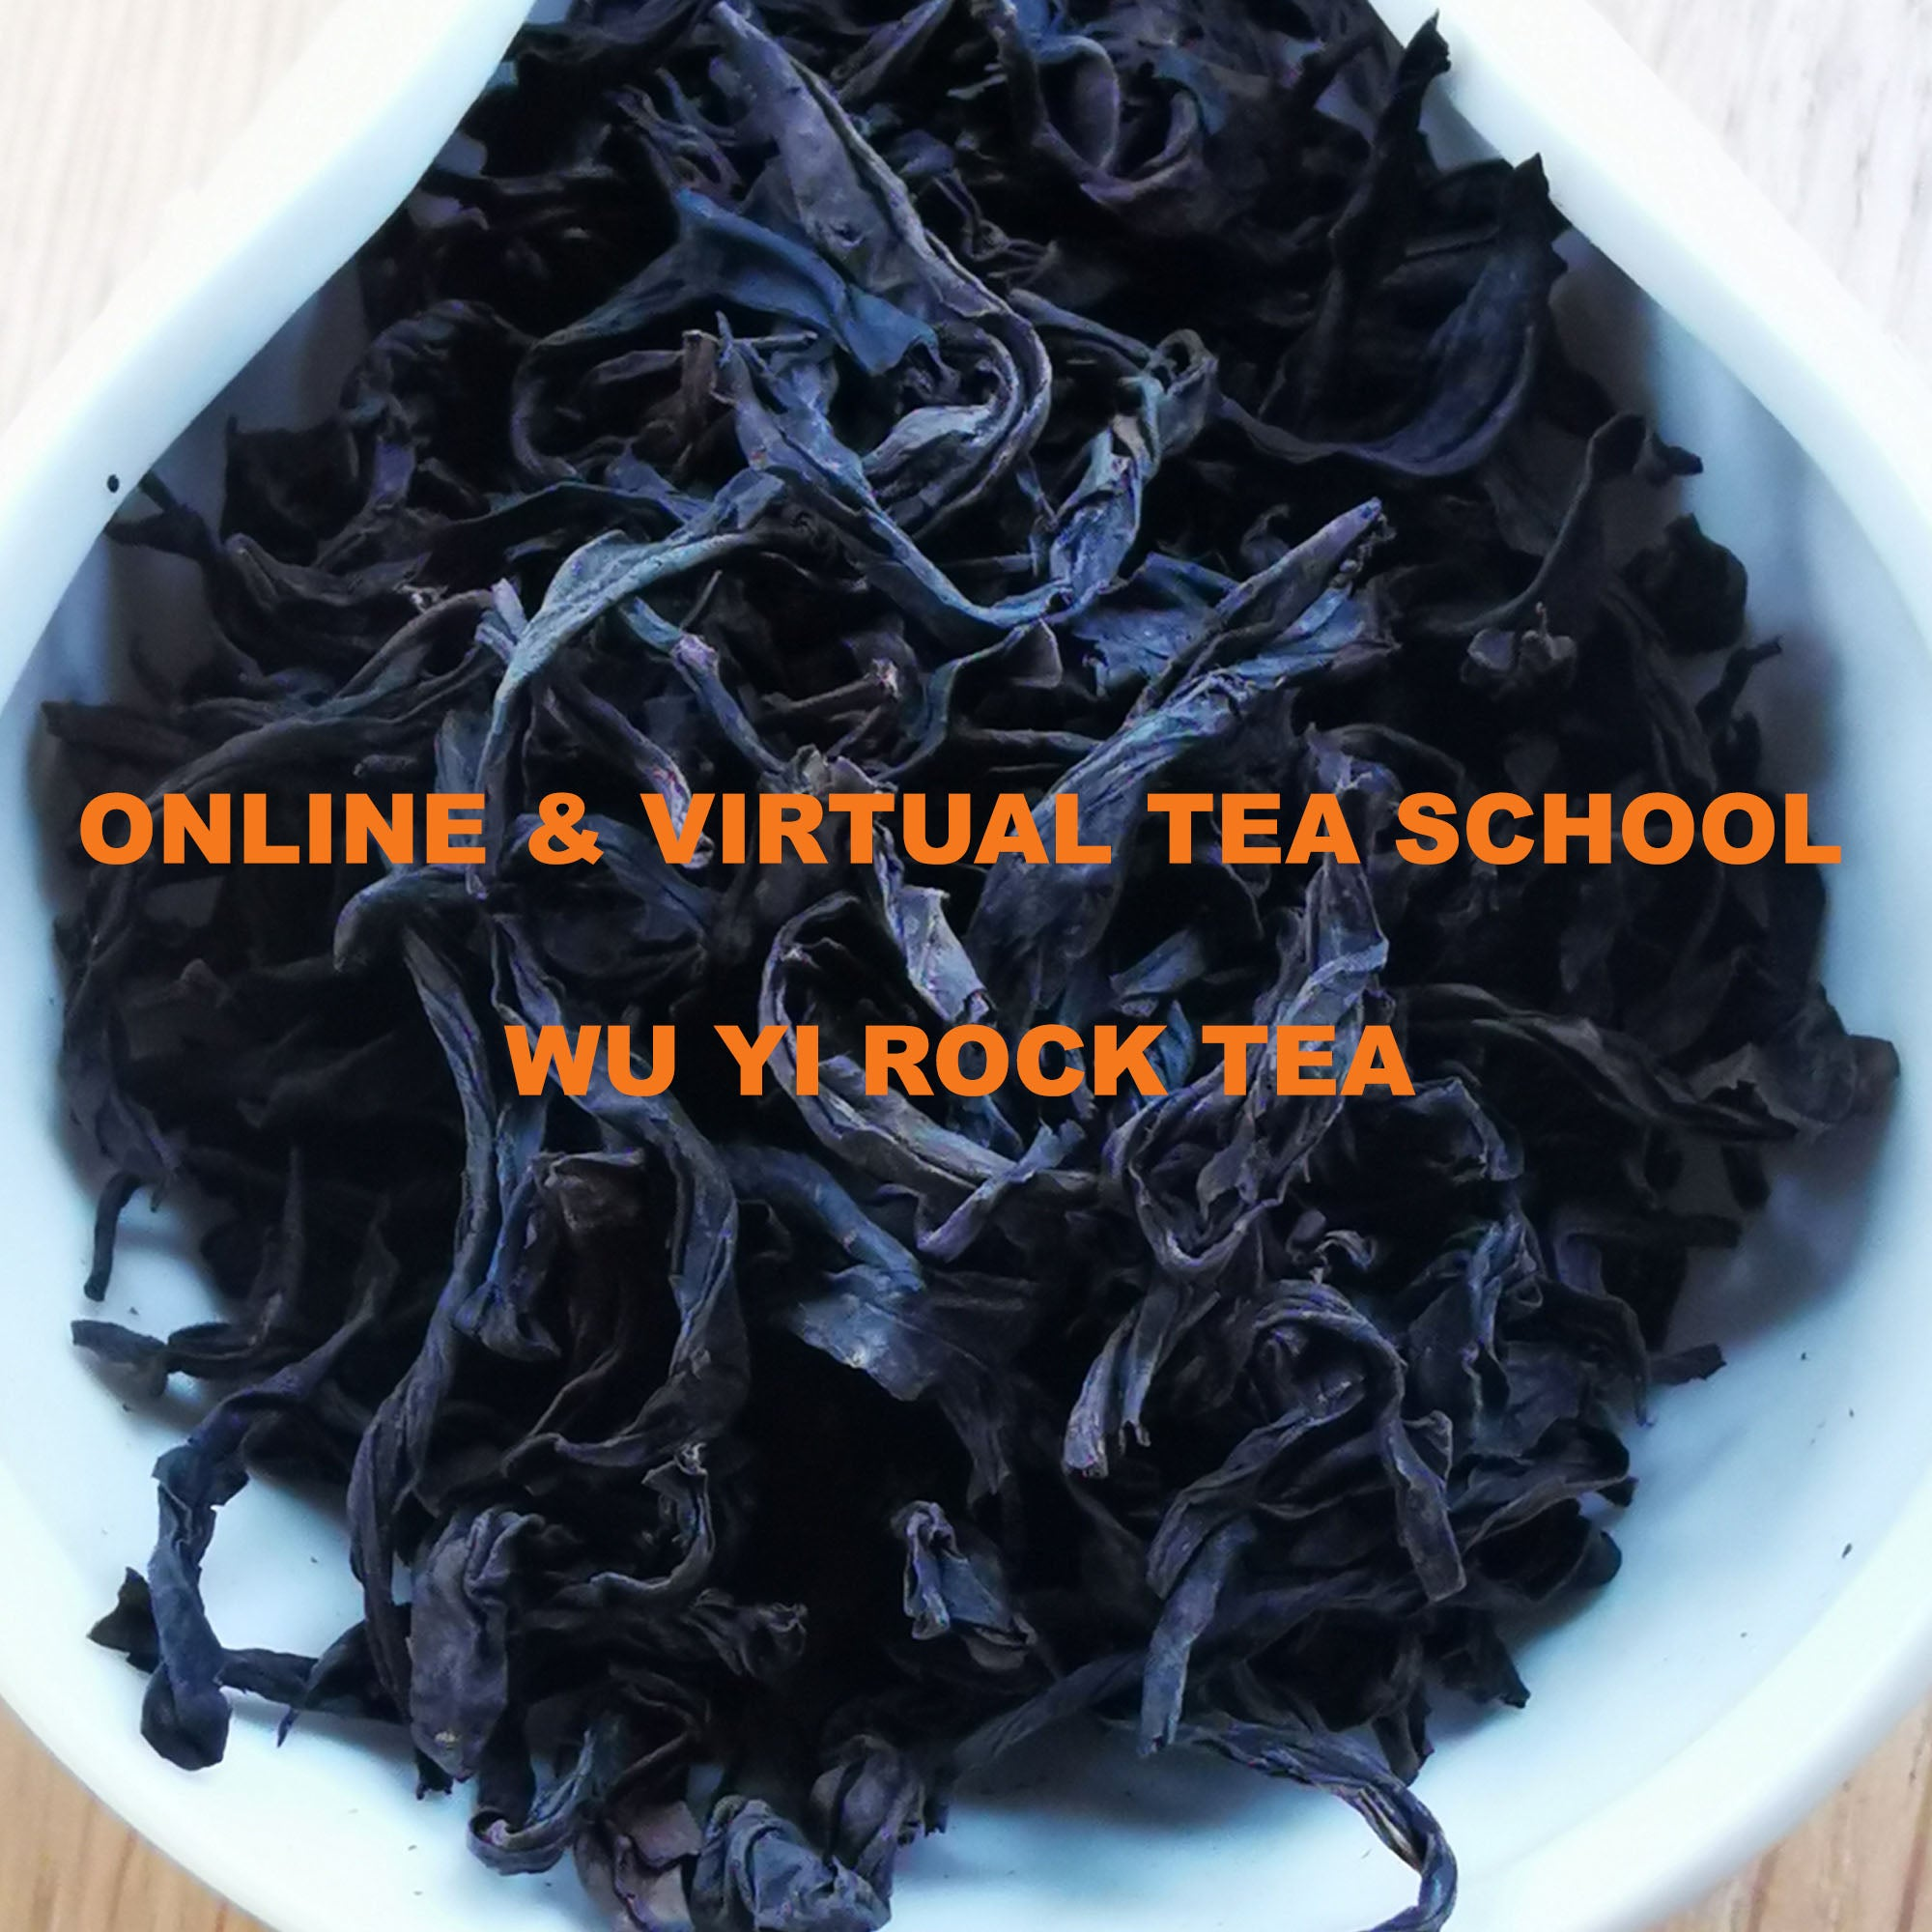 WU YI ROCK TEA - 27th April 2021